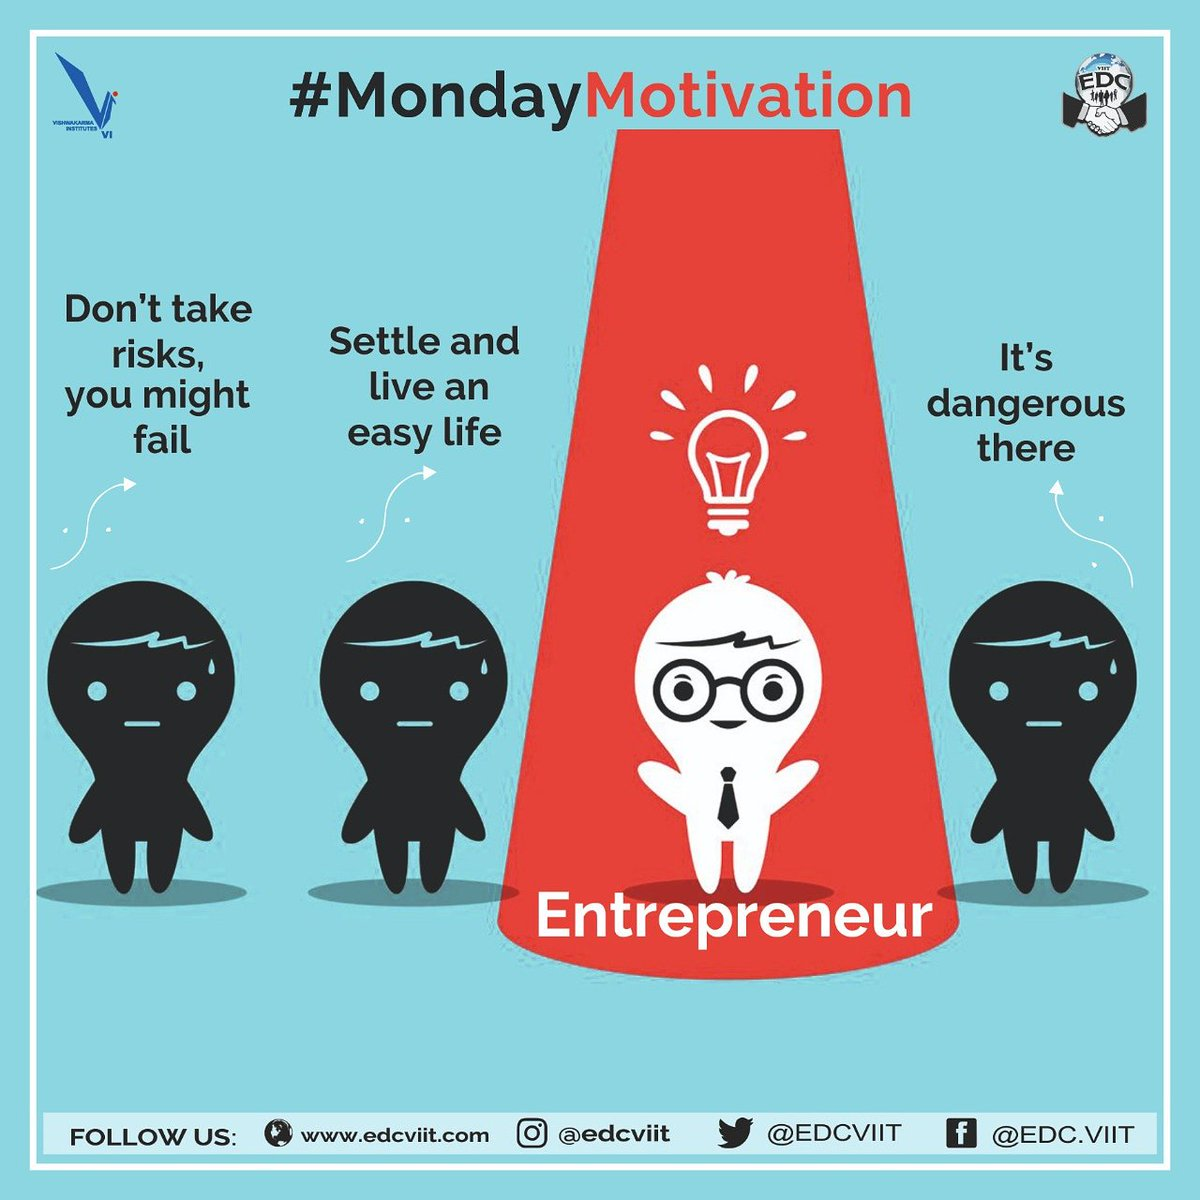 """In #Entrepreneurship, there are either hard ways, smart ways or completely no ways!   You can stand out only if you ignore what """"they"""" say.  #MondayMotivation  #entrepreneurs #edcviit  #mondaythoughts <br>http://pic.twitter.com/RmhApvxMRG"""